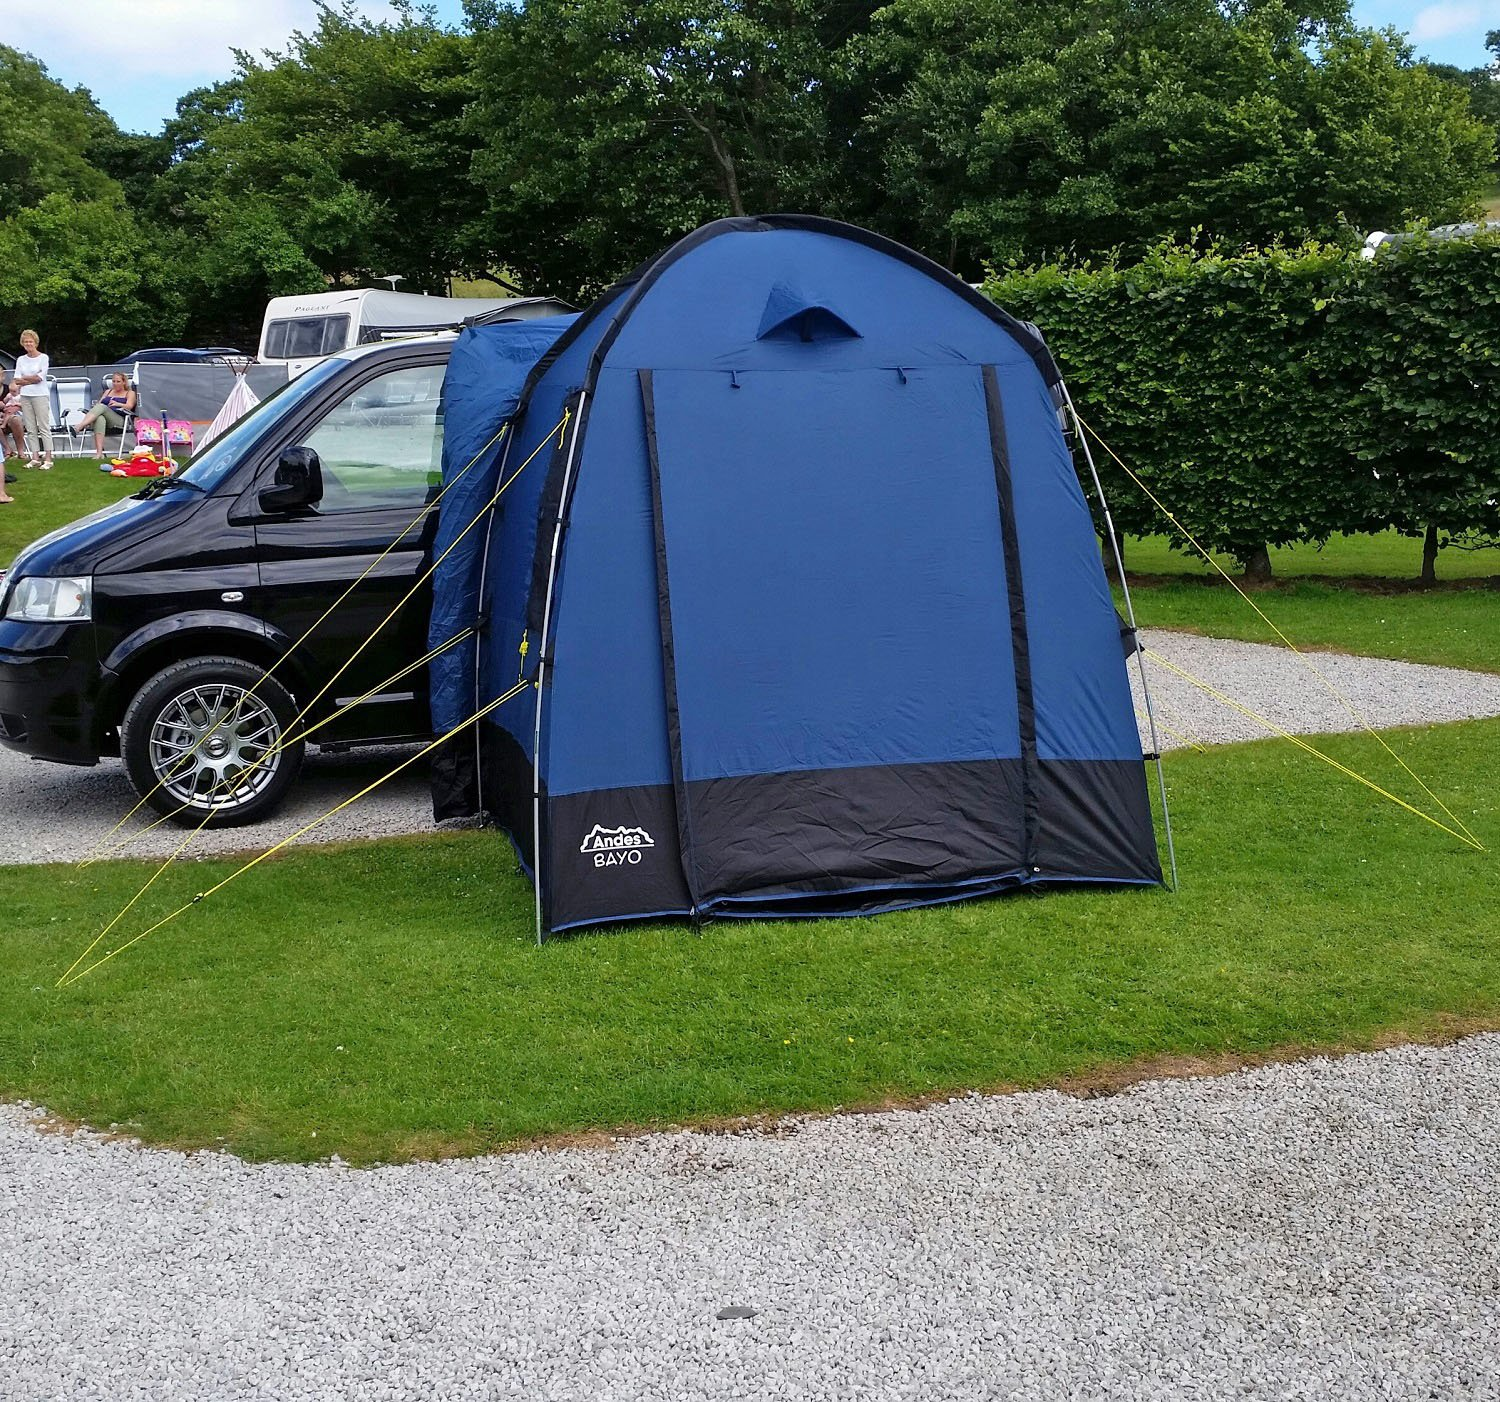 Andes Bayo Driveaway Awning C&ing C&ervan Motorhome Tent 200 x 300cm Amazon.co.uk Sports u0026 Outdoors : motorhome tent - memphite.com